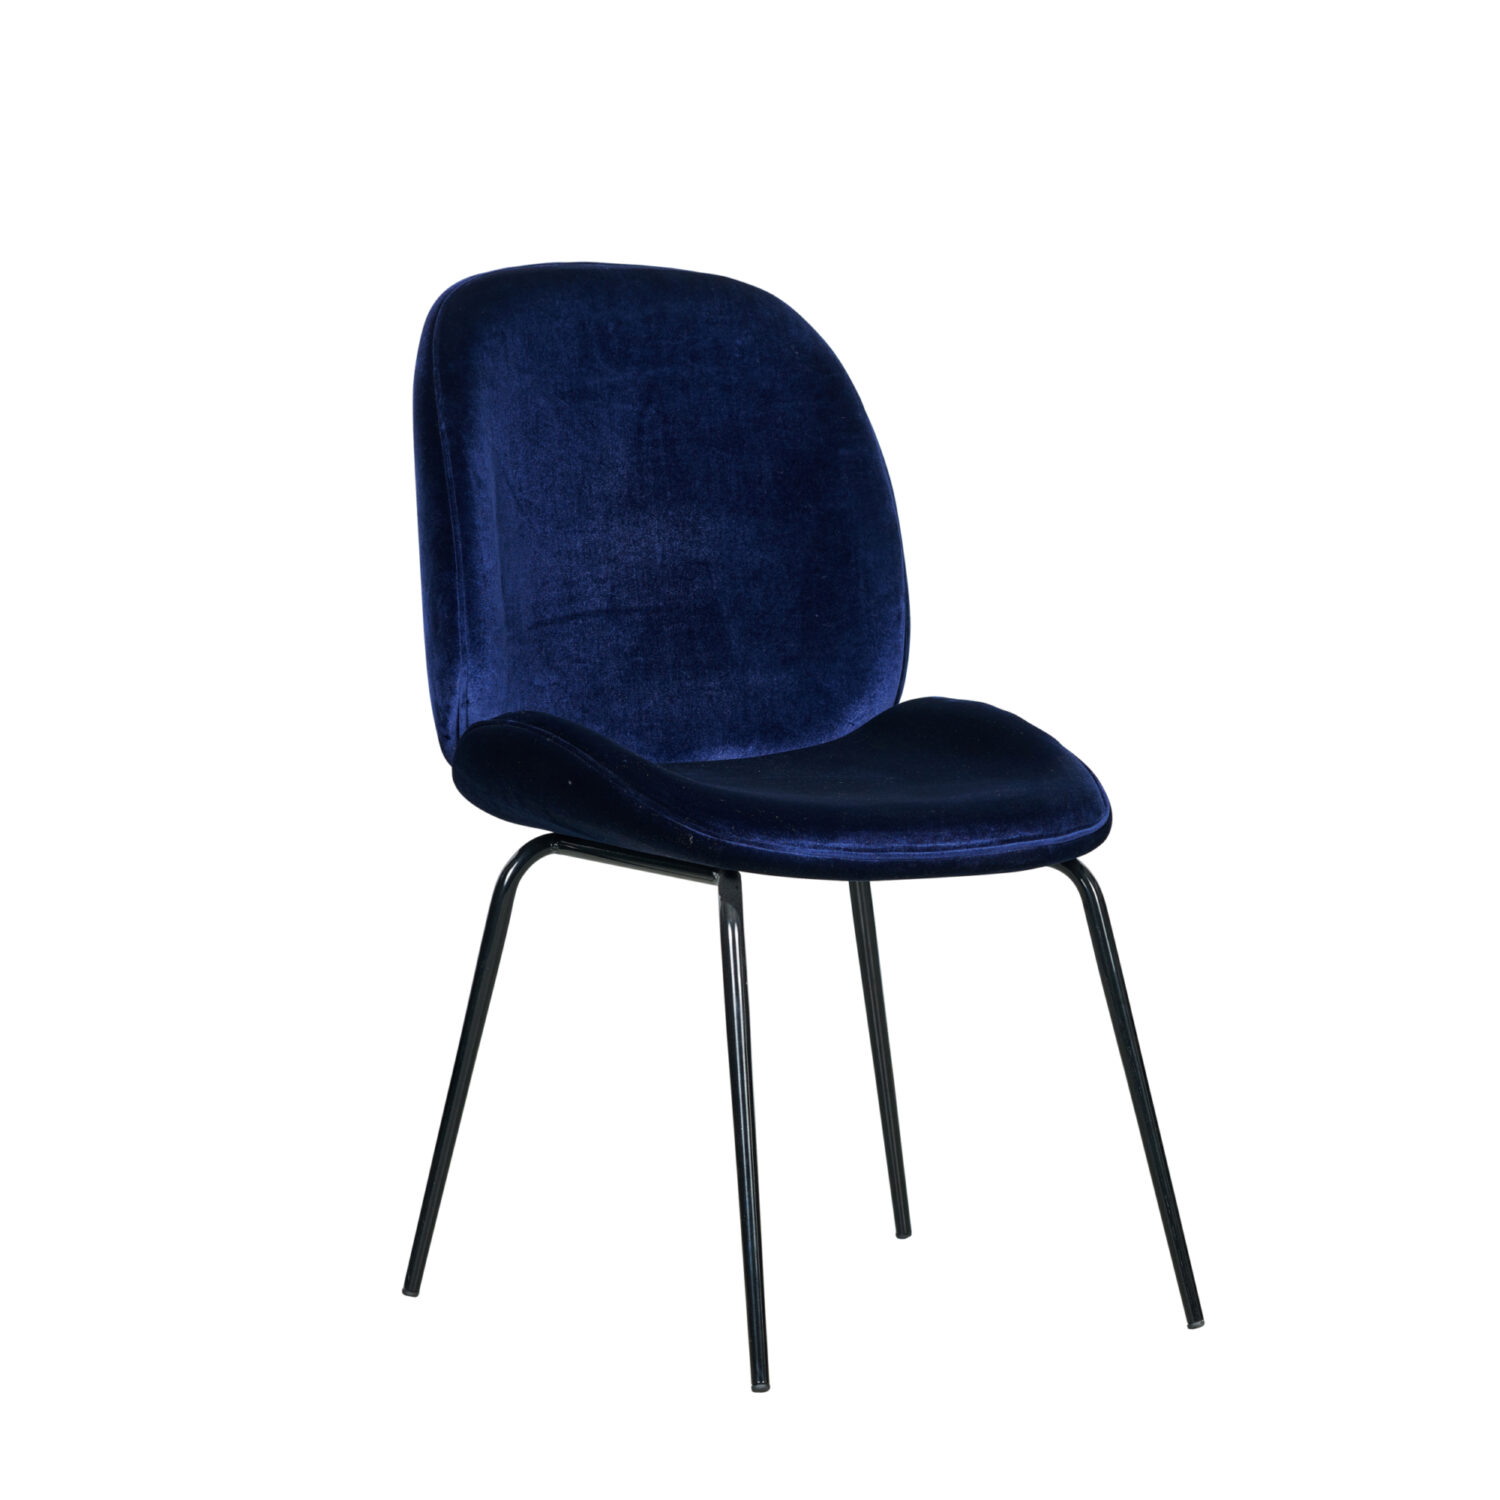 Grace Occasional Chair - Navy Seat & Black Legs - Event Artillery